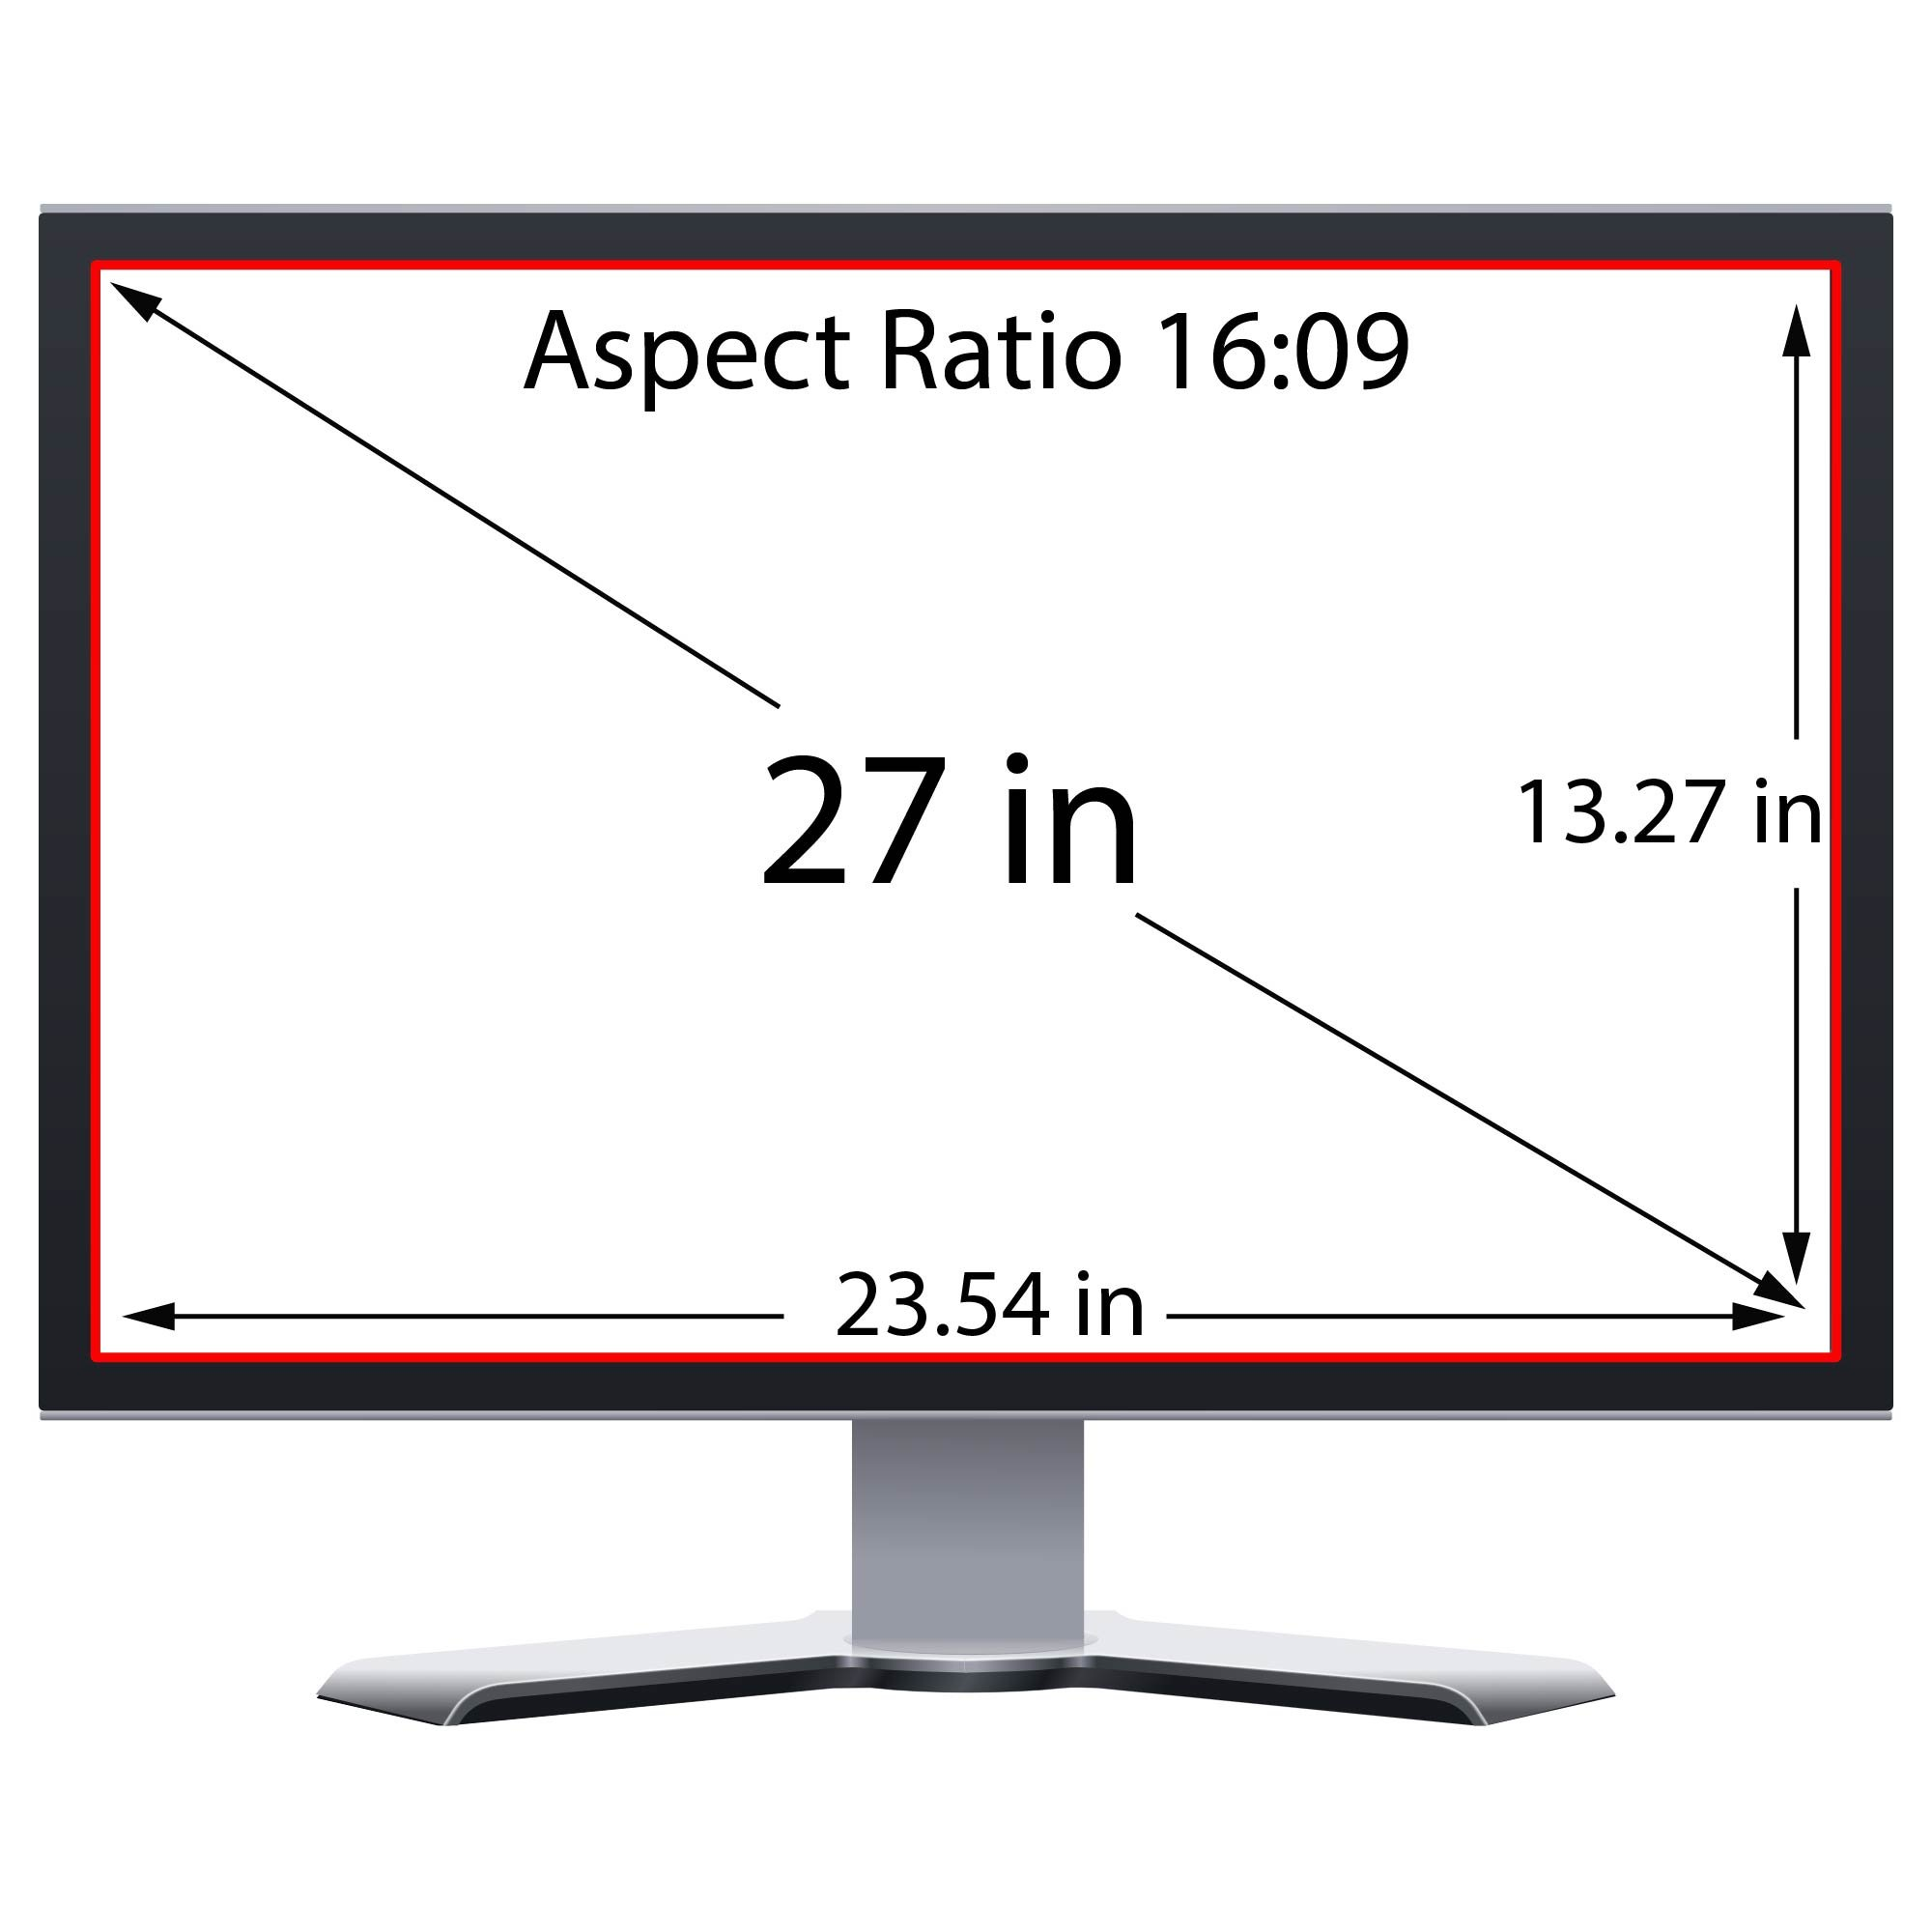 Privacy Screen Filter for 27 Inches Desktop Computer Widescreen Monitor with Aspect Ratio 16:09 Please check Dimension Carefully by WS Vendor